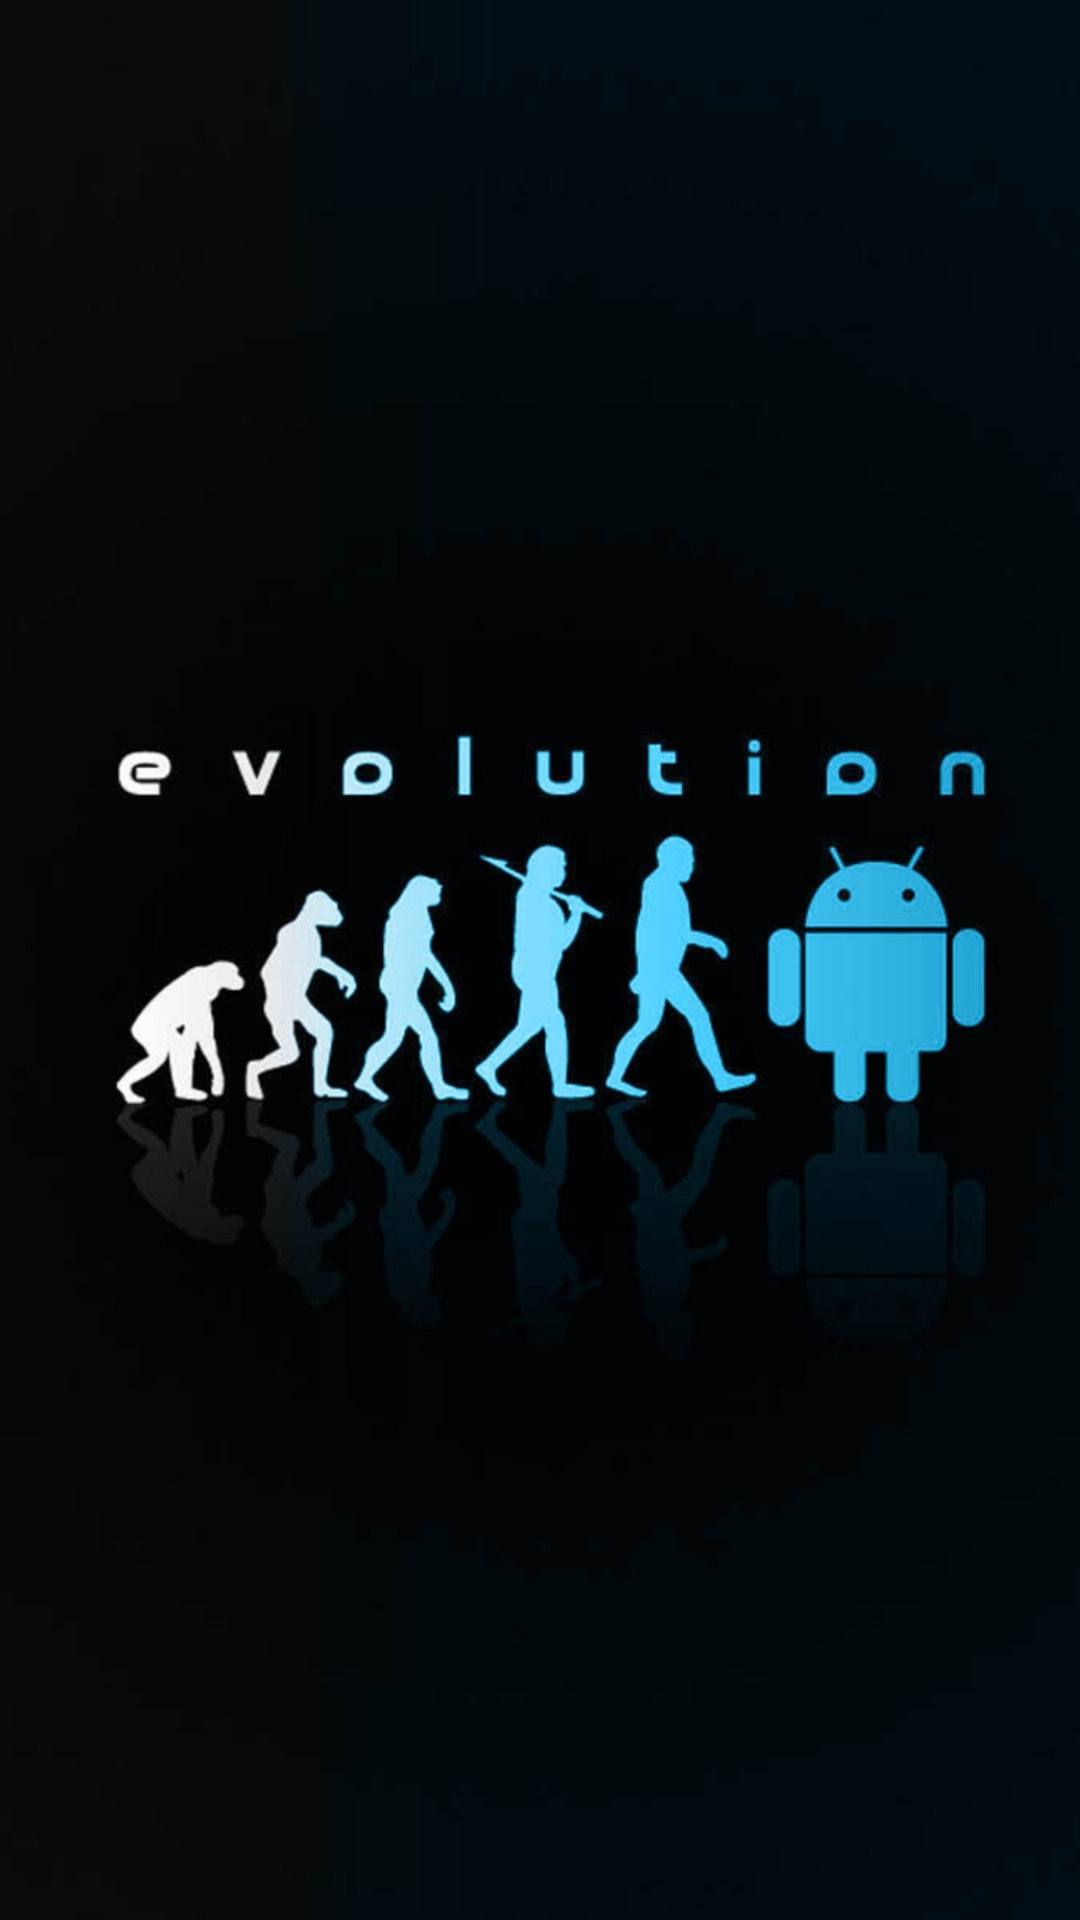 Android-Evolution-android-wallpaper-wp5403244